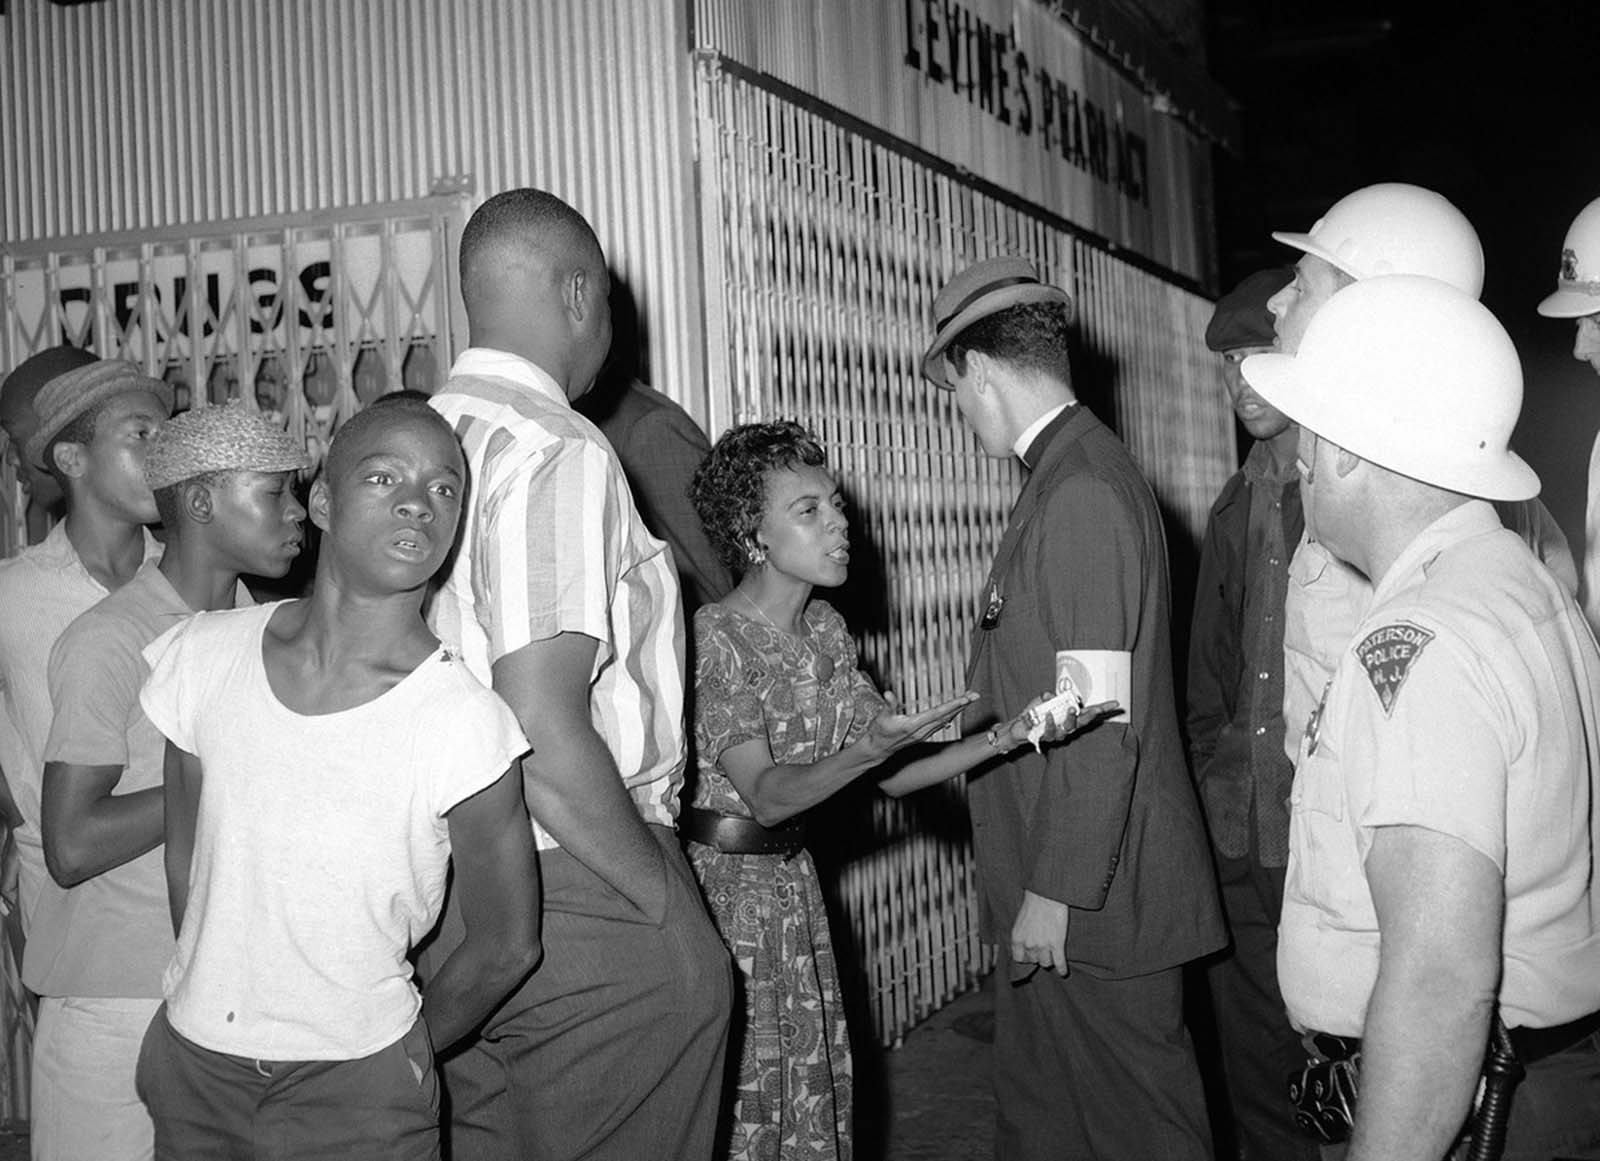 An unidentified woman argues with a policeman in Paterson, New Jersey, on August 12, 1964 while a clergyman, center, tries to intervene.